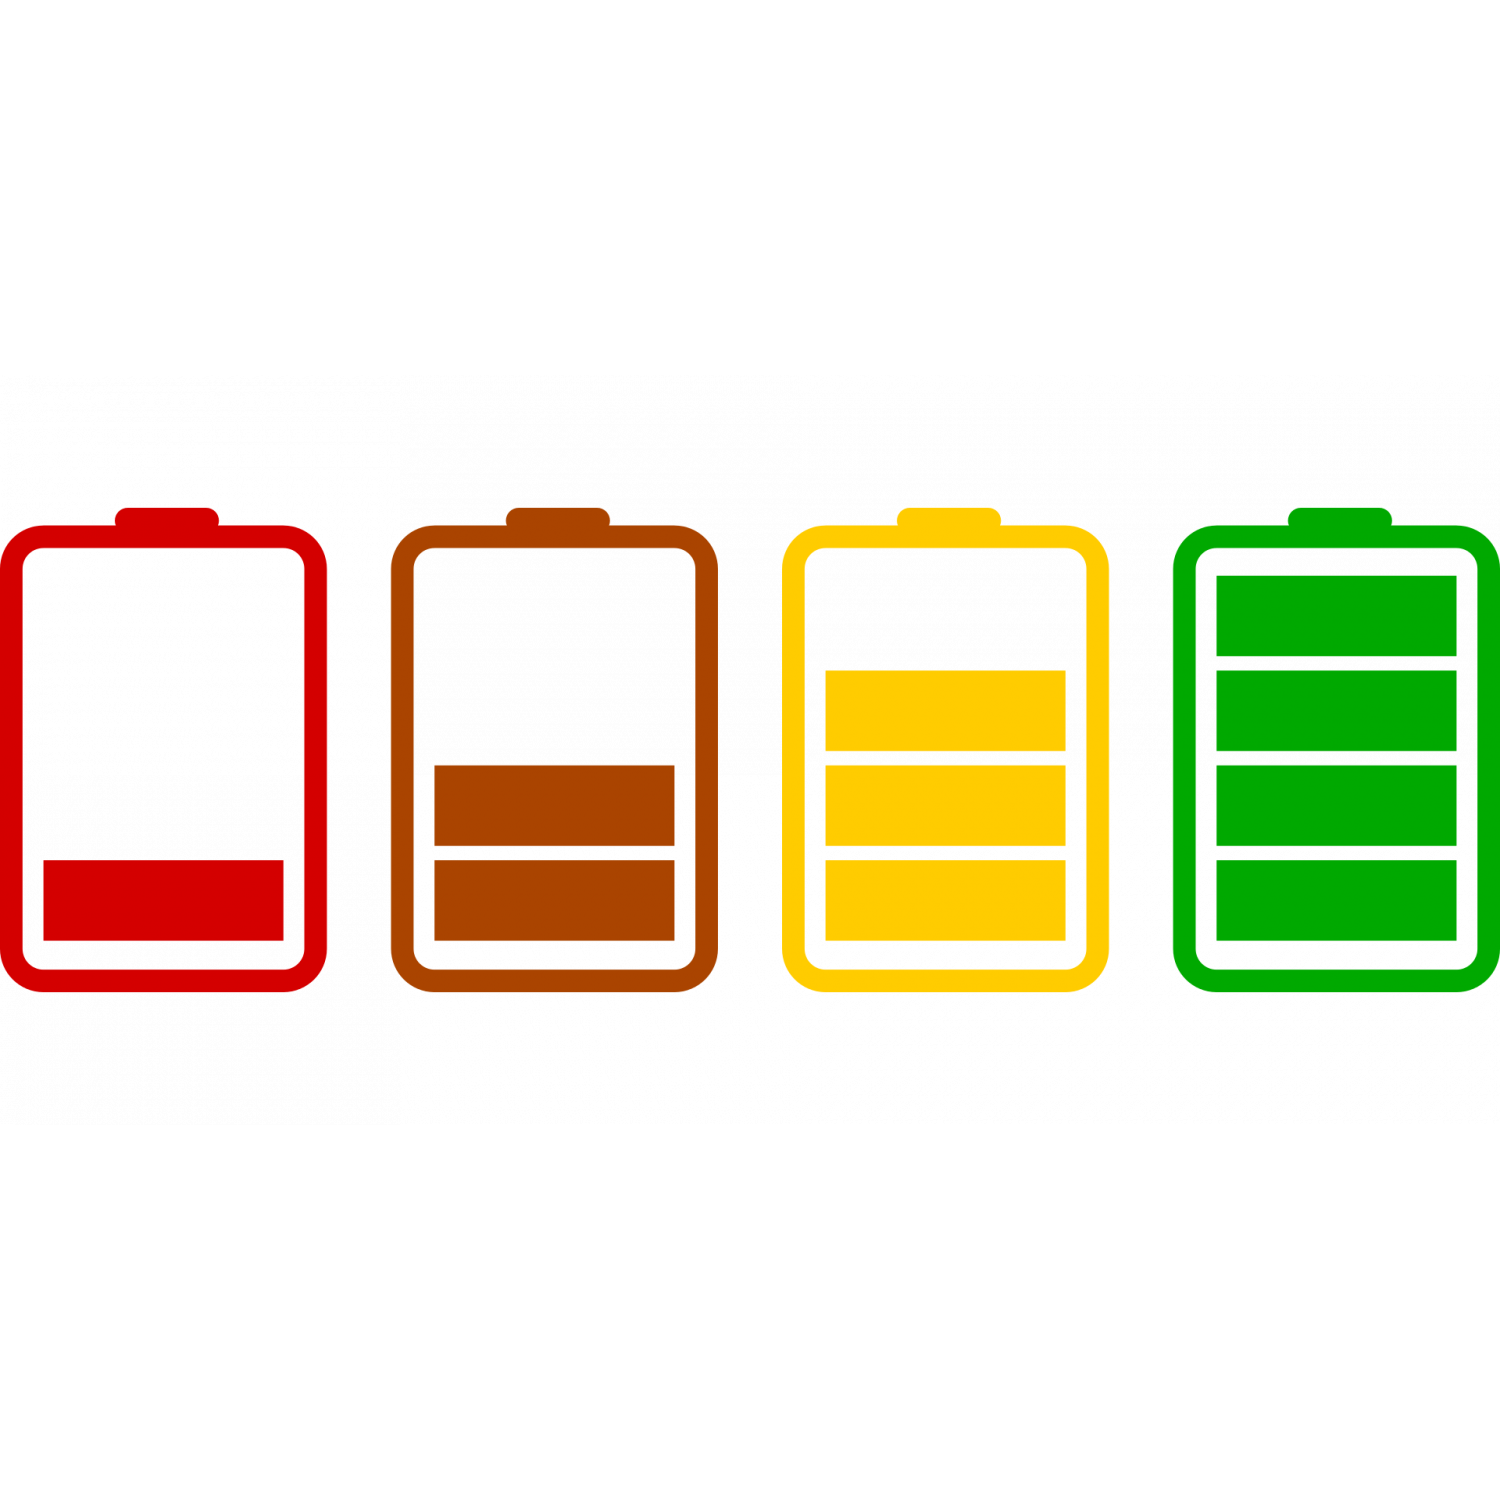 Battery 2.png